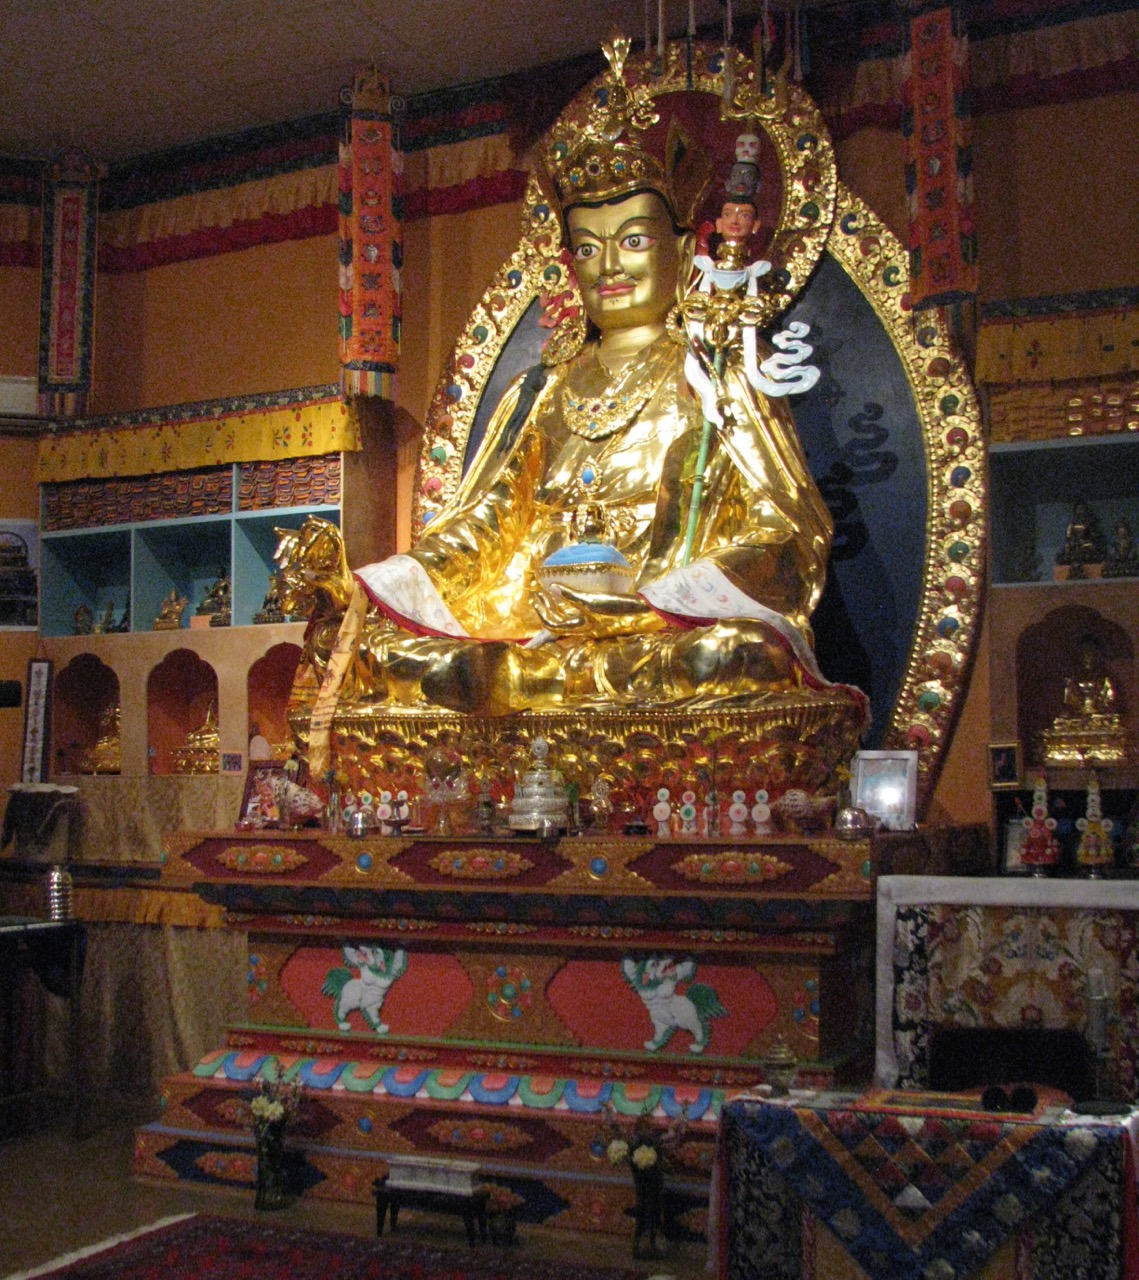 Places Of Worship For Taoism: The Value Of Visiting Places Of Worship